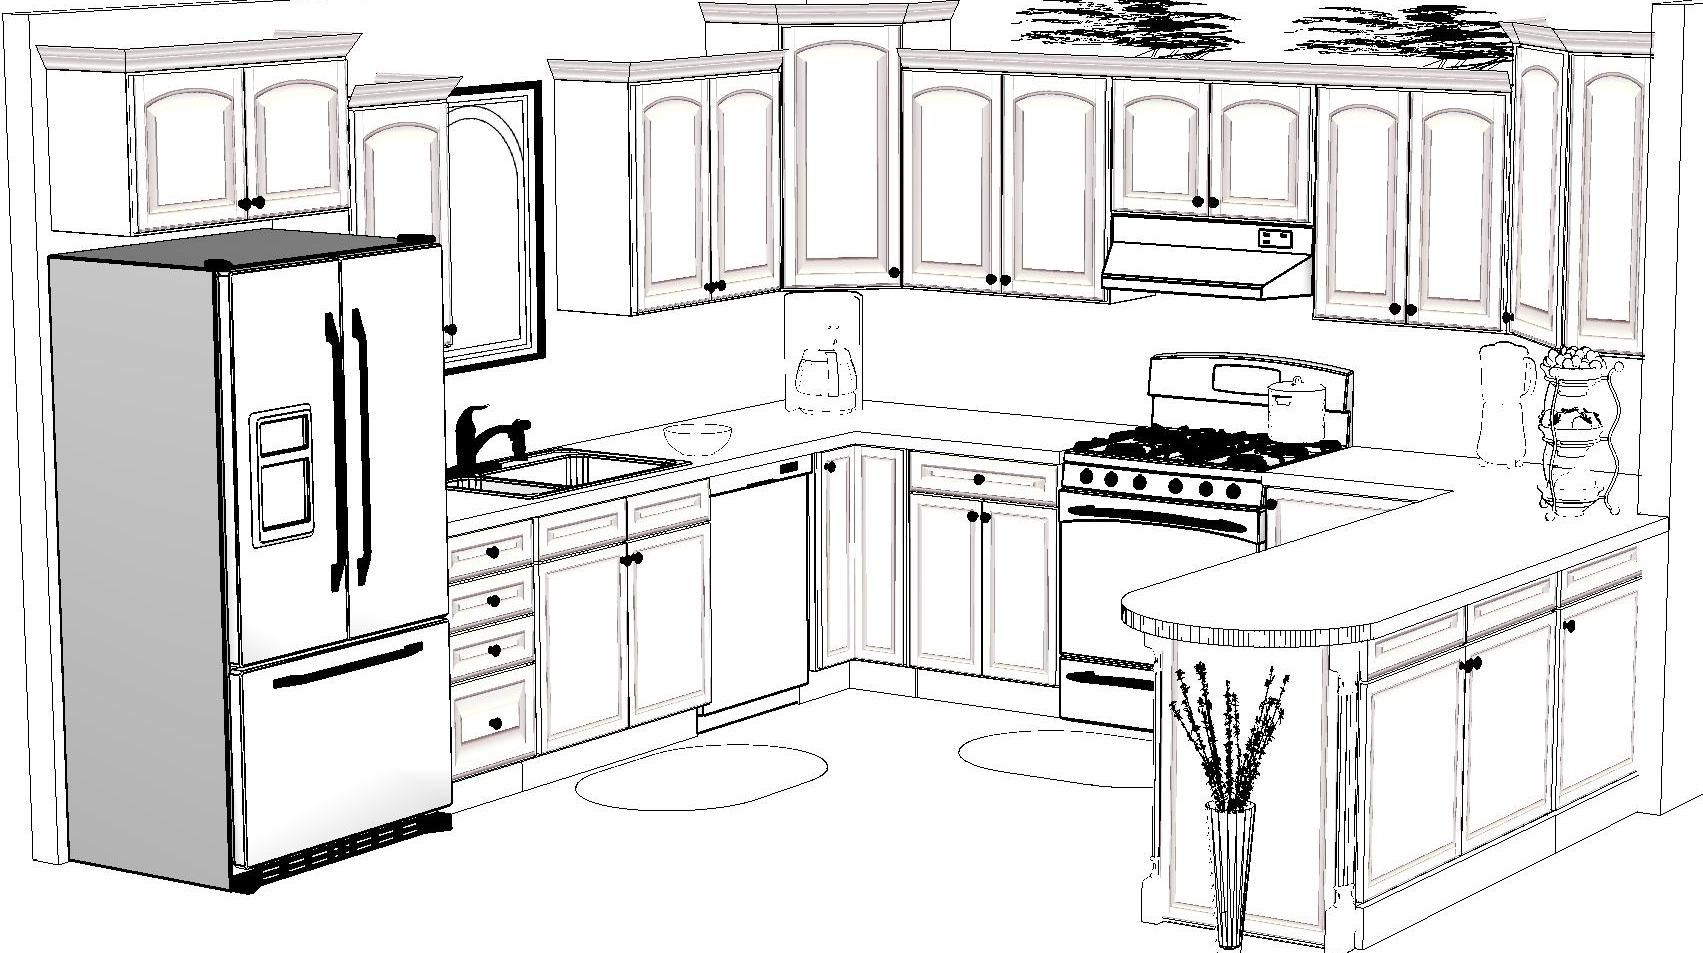 kitchen design sketch kitchen design sketch awesome 13988 02drawing 583